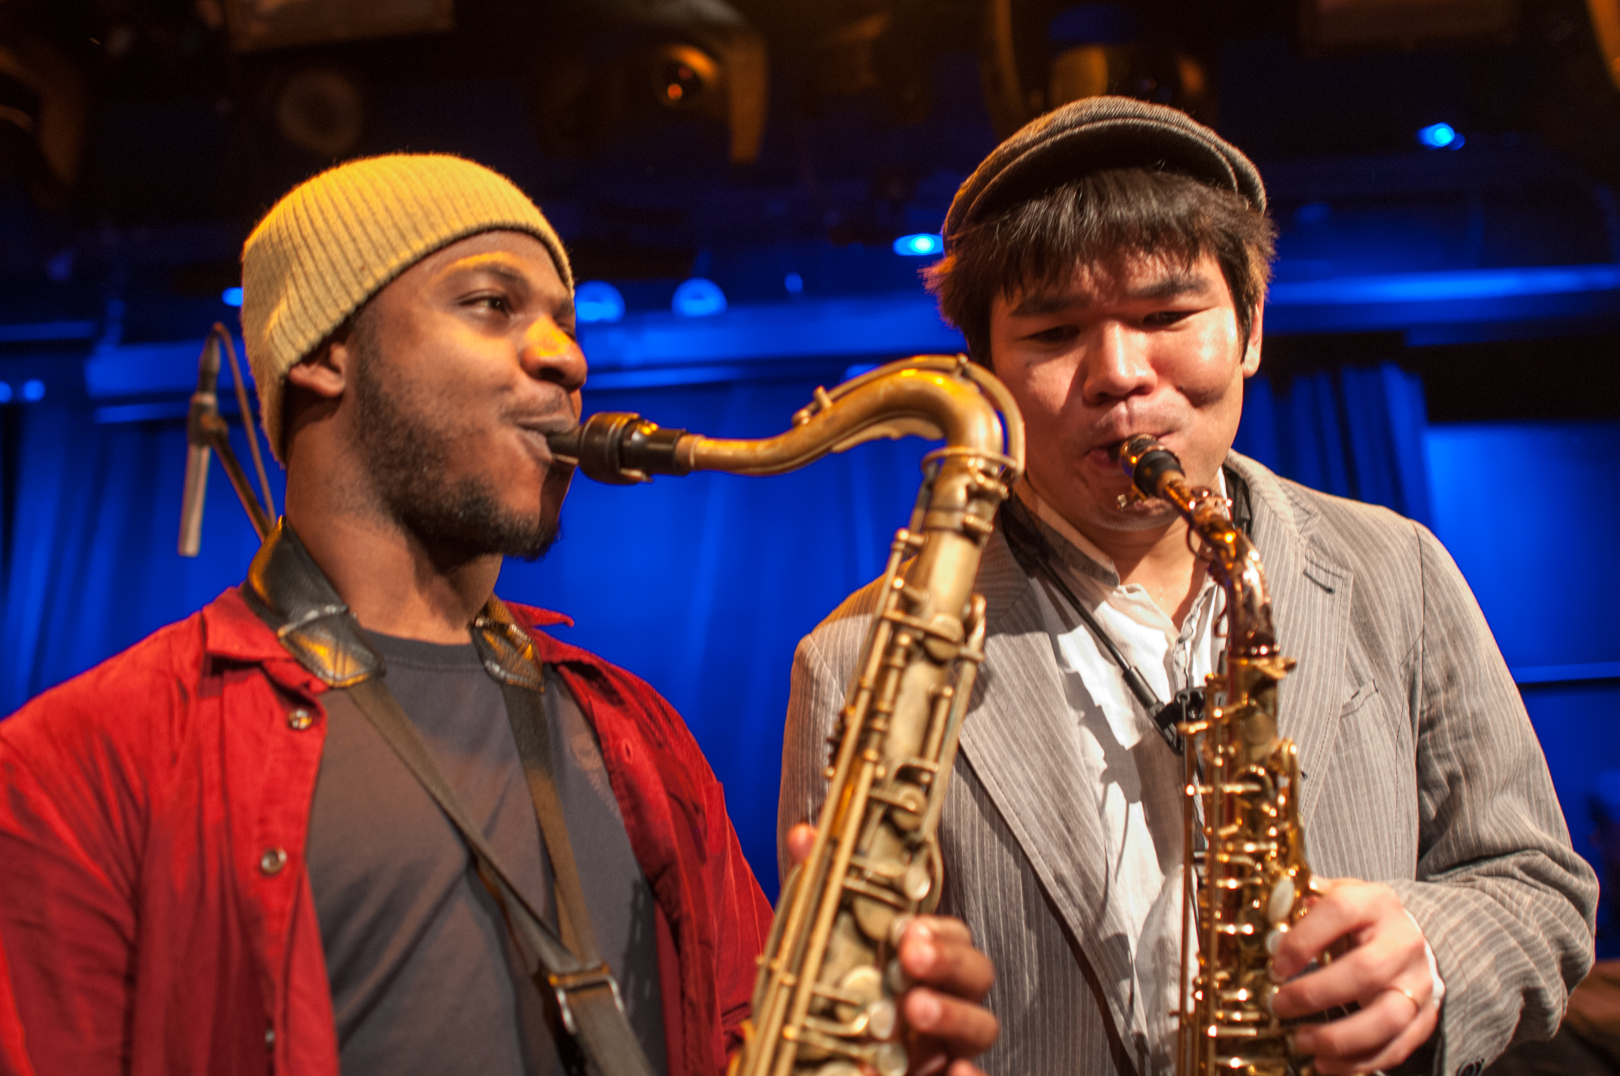 Yosuke Sato and Guest with Gregory Porter at le Poisson Rouge at Winter Jazzfest 2013